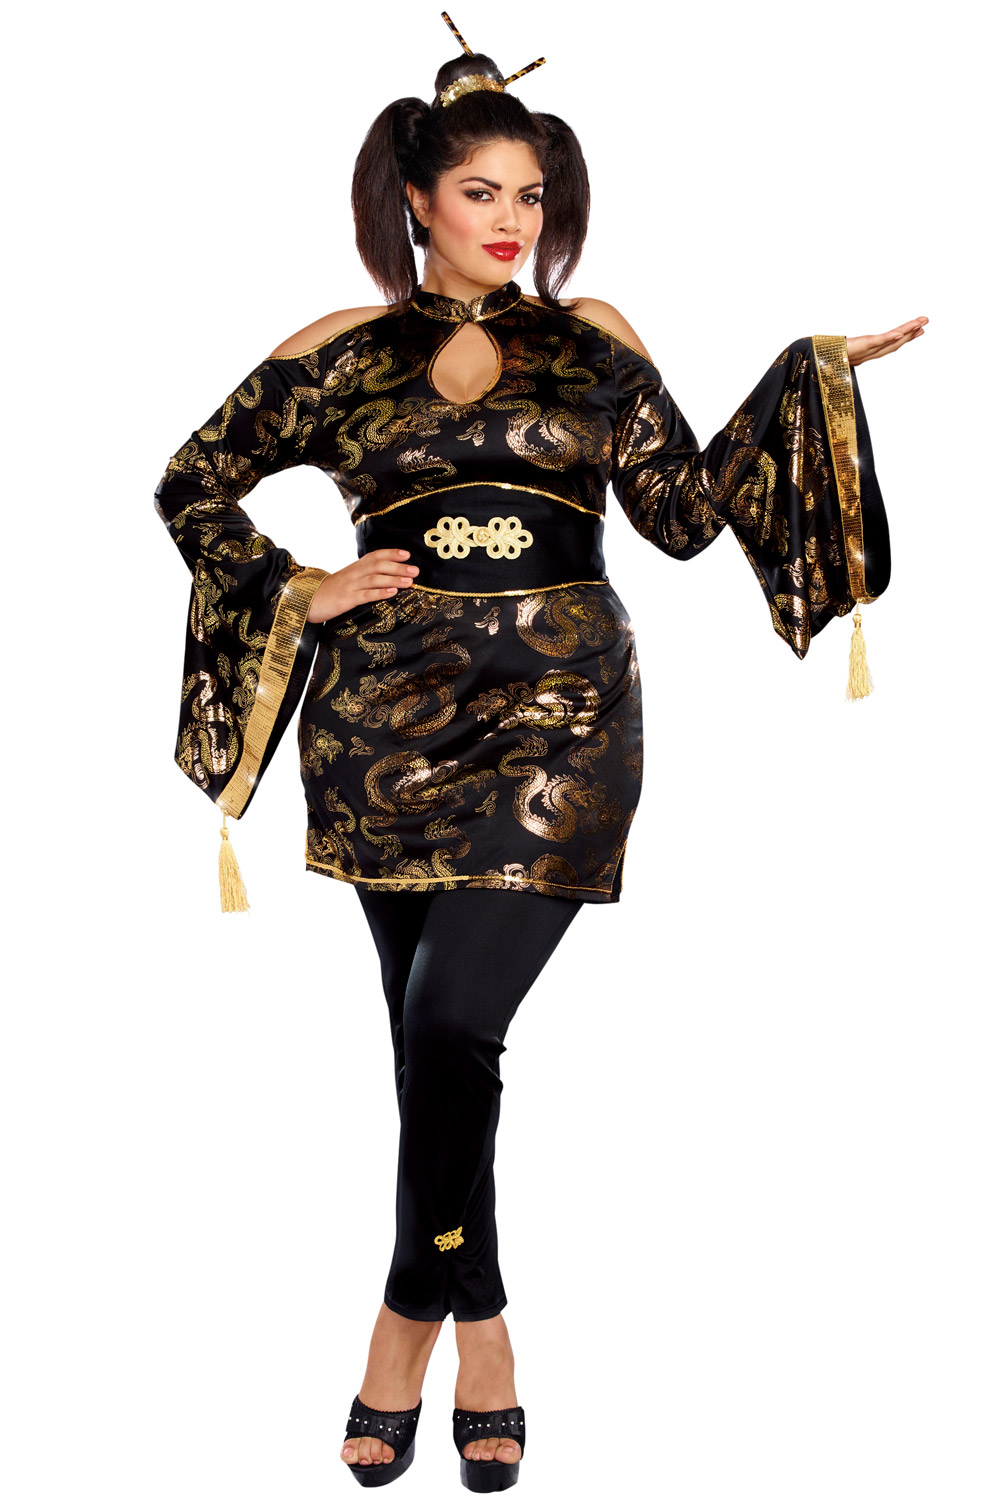 Plus Size Womens Costumes, Adult Halloween Costumes